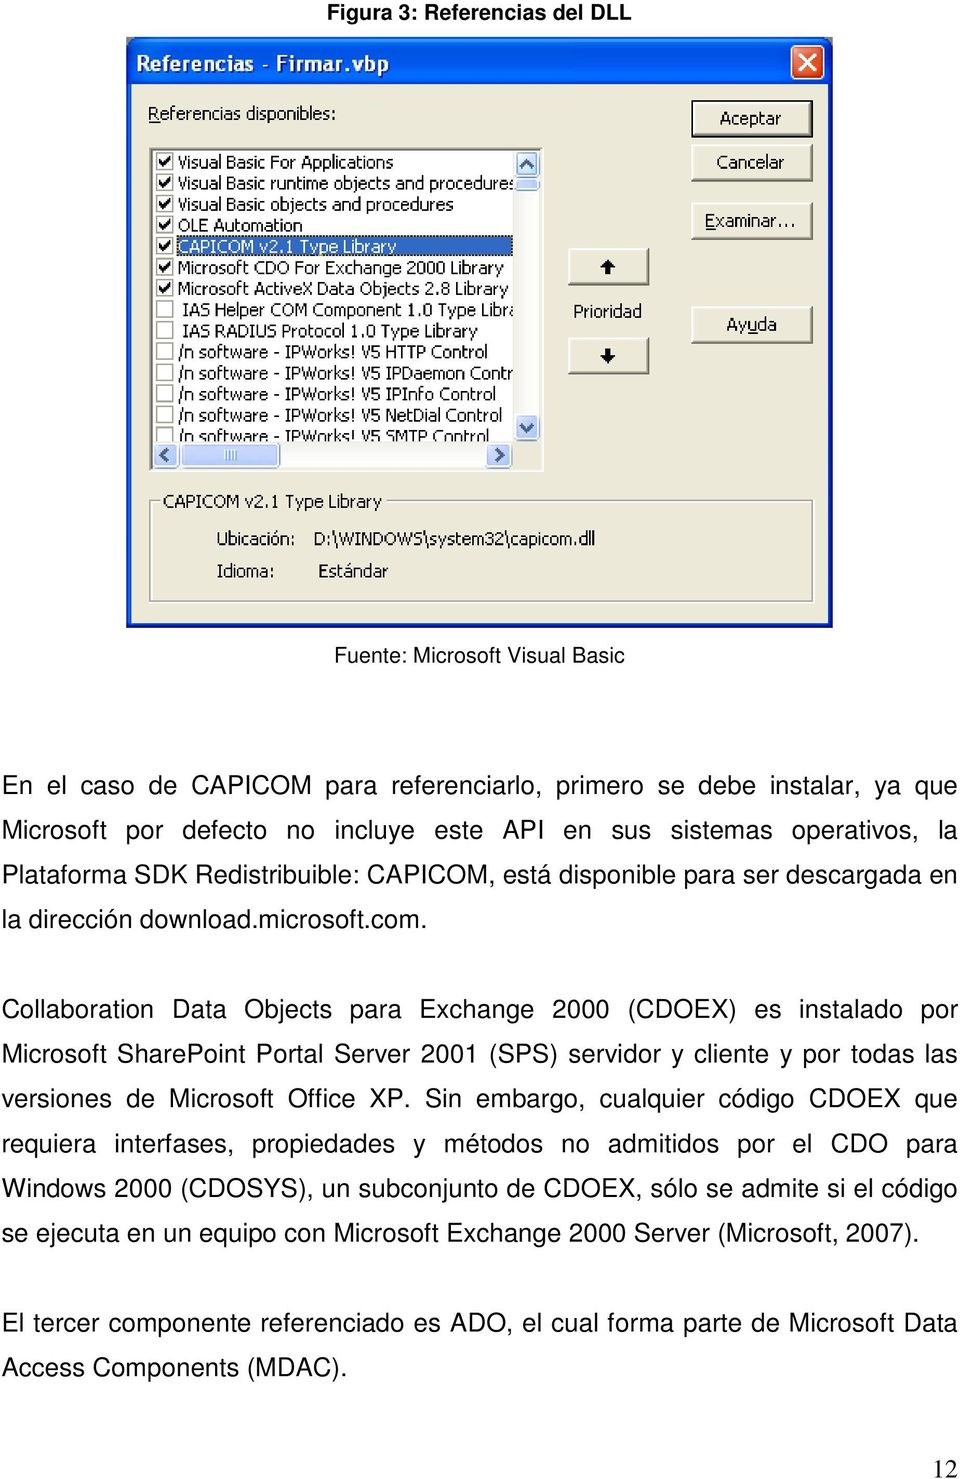 Collaboration Data Objects para Exchange 2000 (CDOEX) es instalado por Microsoft SharePoint Portal Server 2001 (SPS) servidor y cliente y por todas las versiones de Microsoft Office XP.